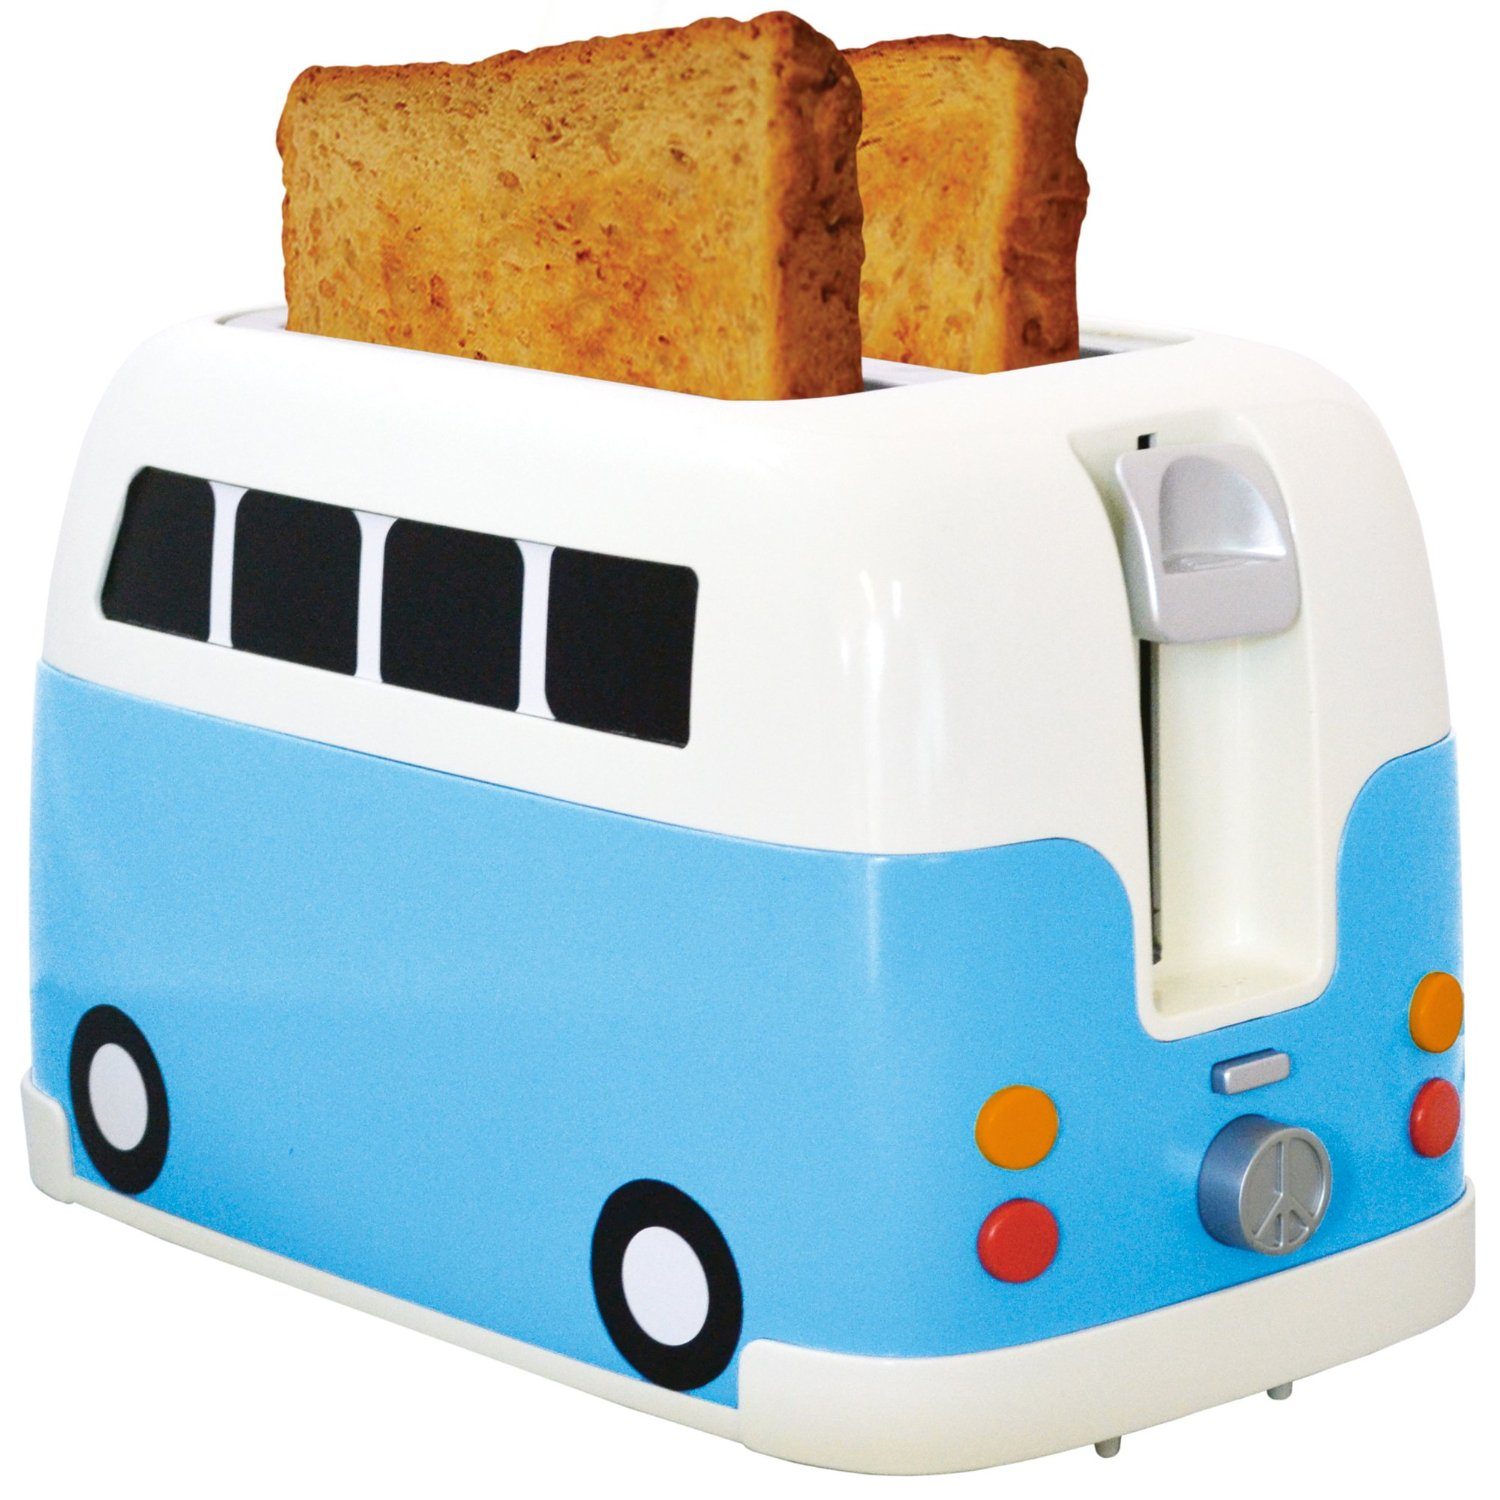 Toaster Campervan